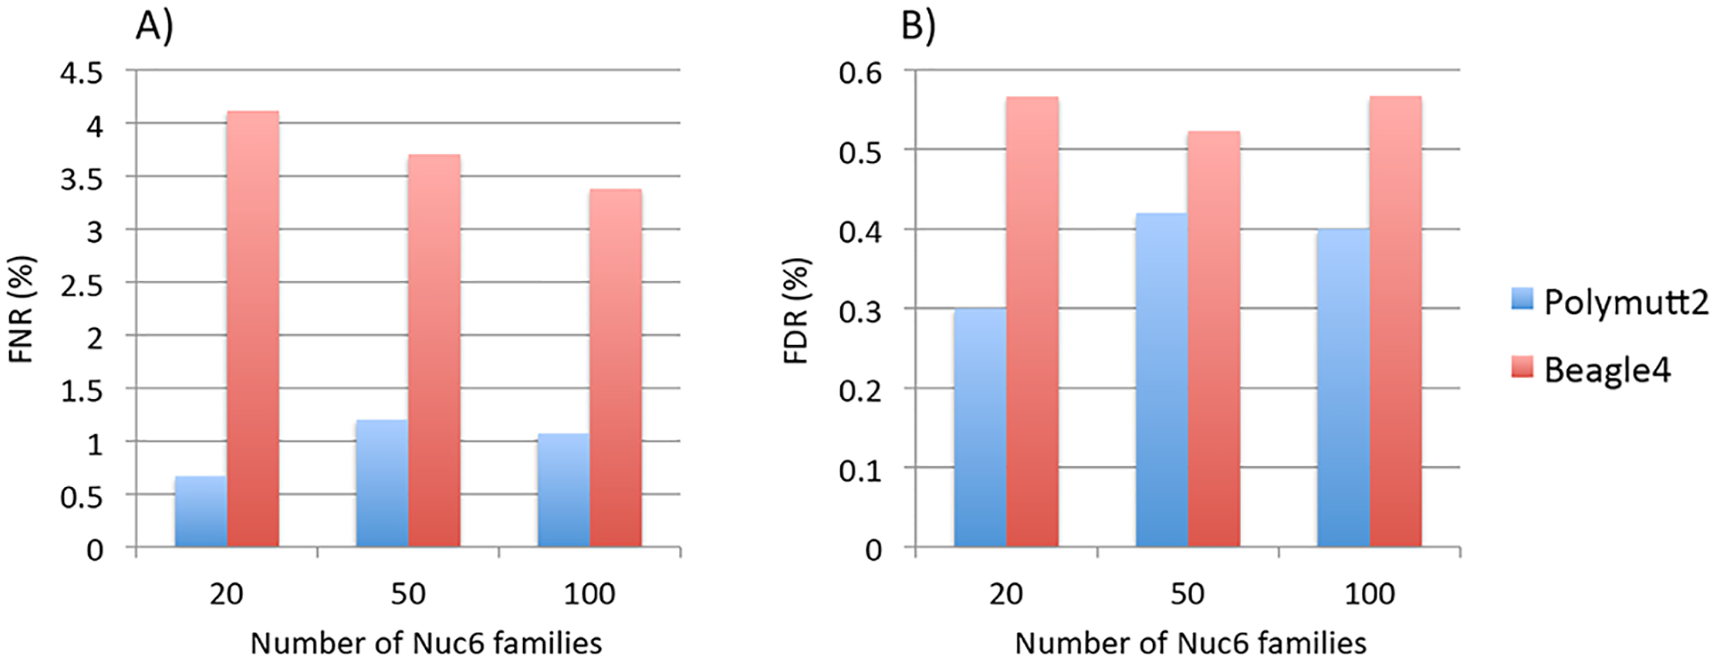 The FNR (%) in Panel A) and FDR (%) in Panel B) of heterozygous genotypes at variant sites with MAF<0.02 for Polymutt2 and Beagle4 calls for different numbers of simulated Nuc6 pedigrees at 10X coverage.